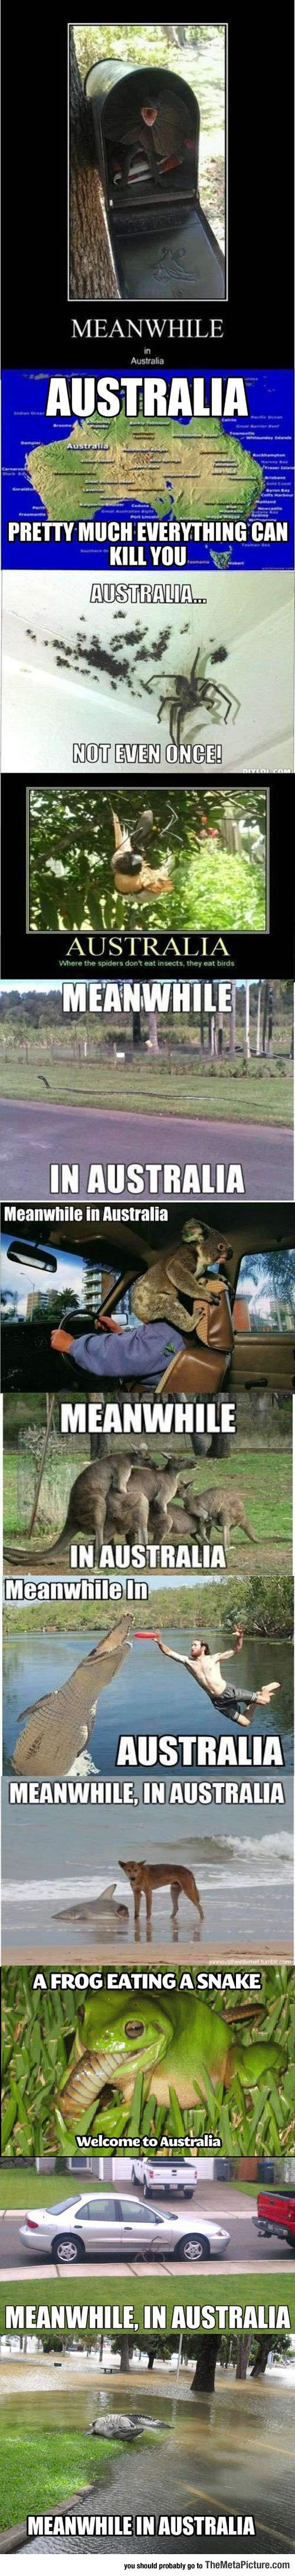 I live in Australia and I can confirm that this is all true but you forgot the summers and  swooping season